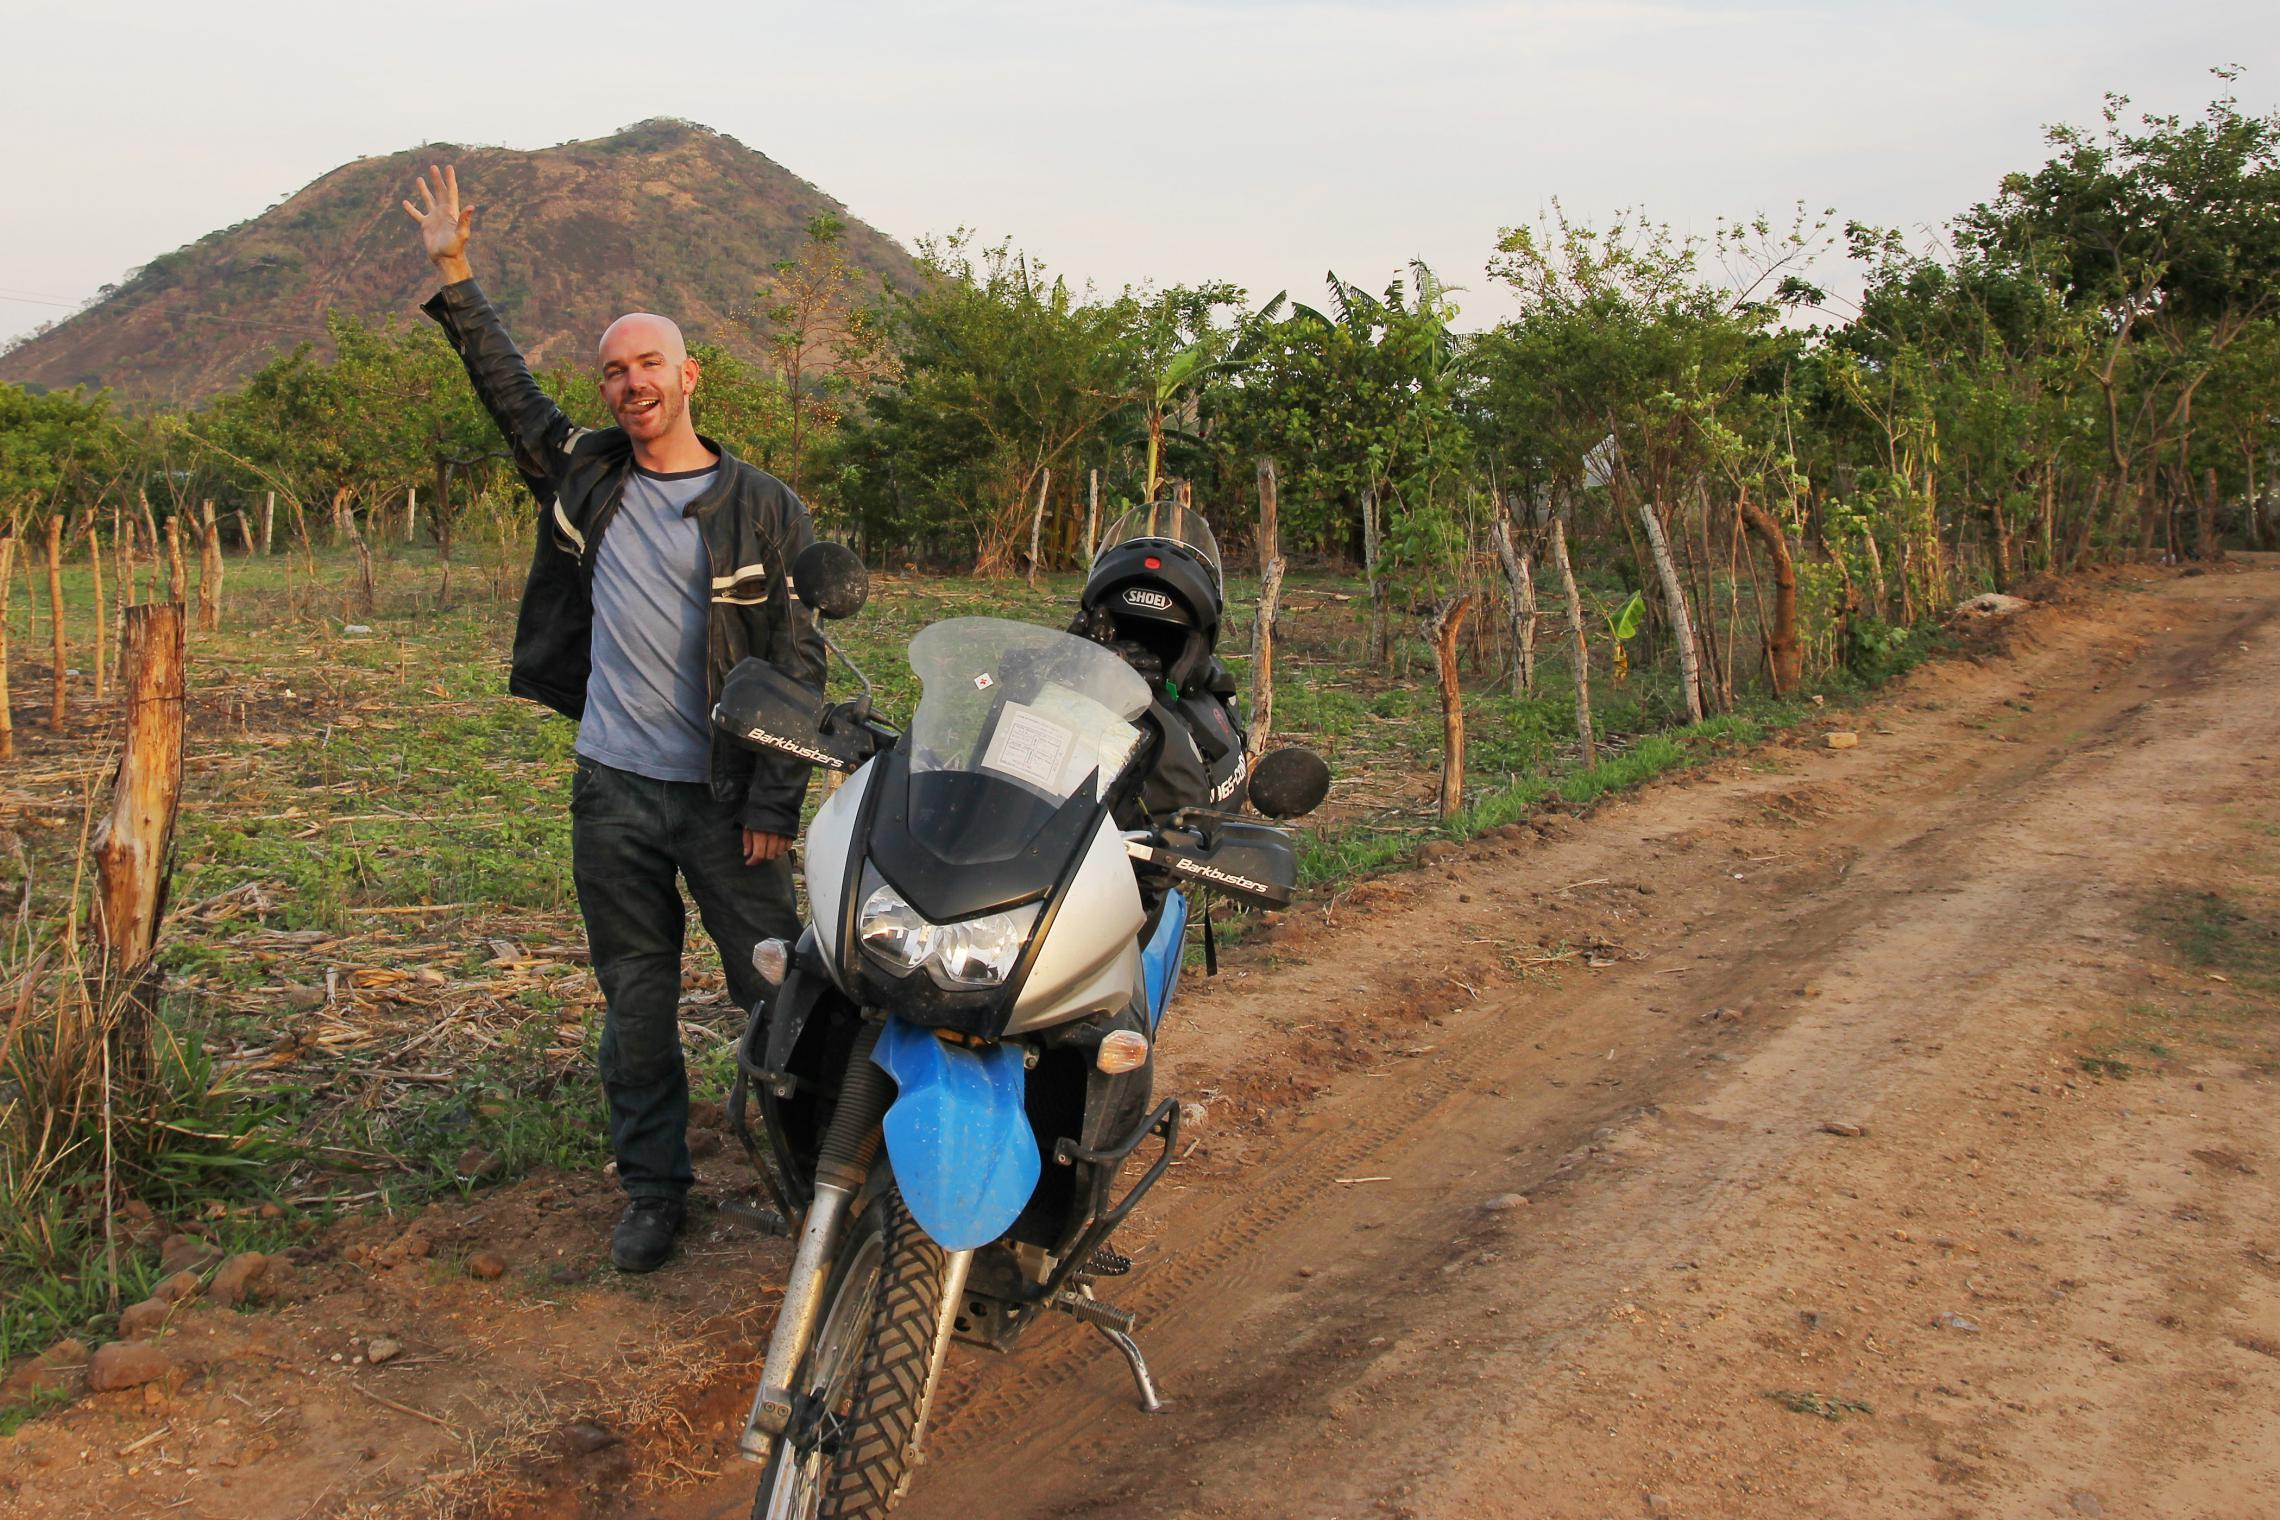 5,000 miles - The ride into Santa Ana, El Salvador